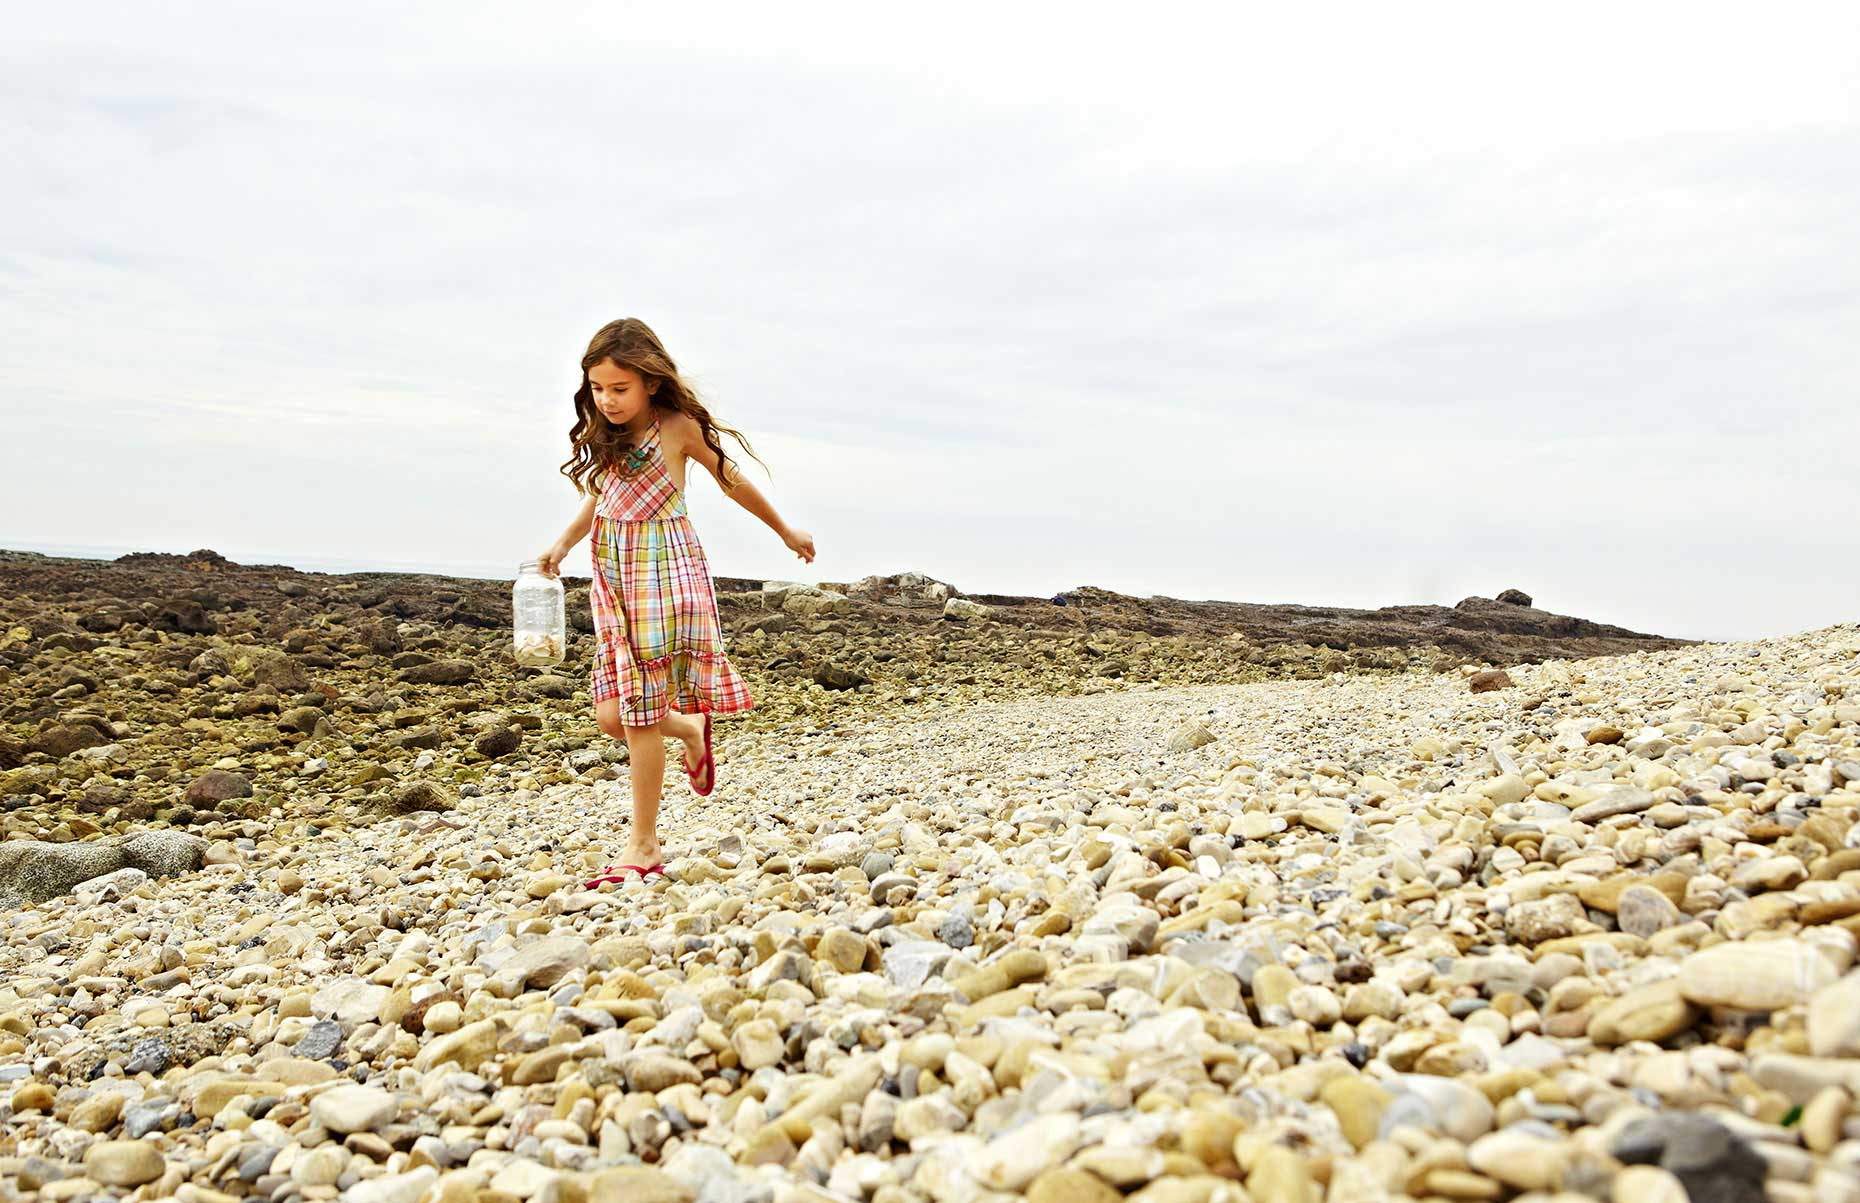 Photography_Children and Teens_Girl Collecting Shells at Beach-Tony Garcia